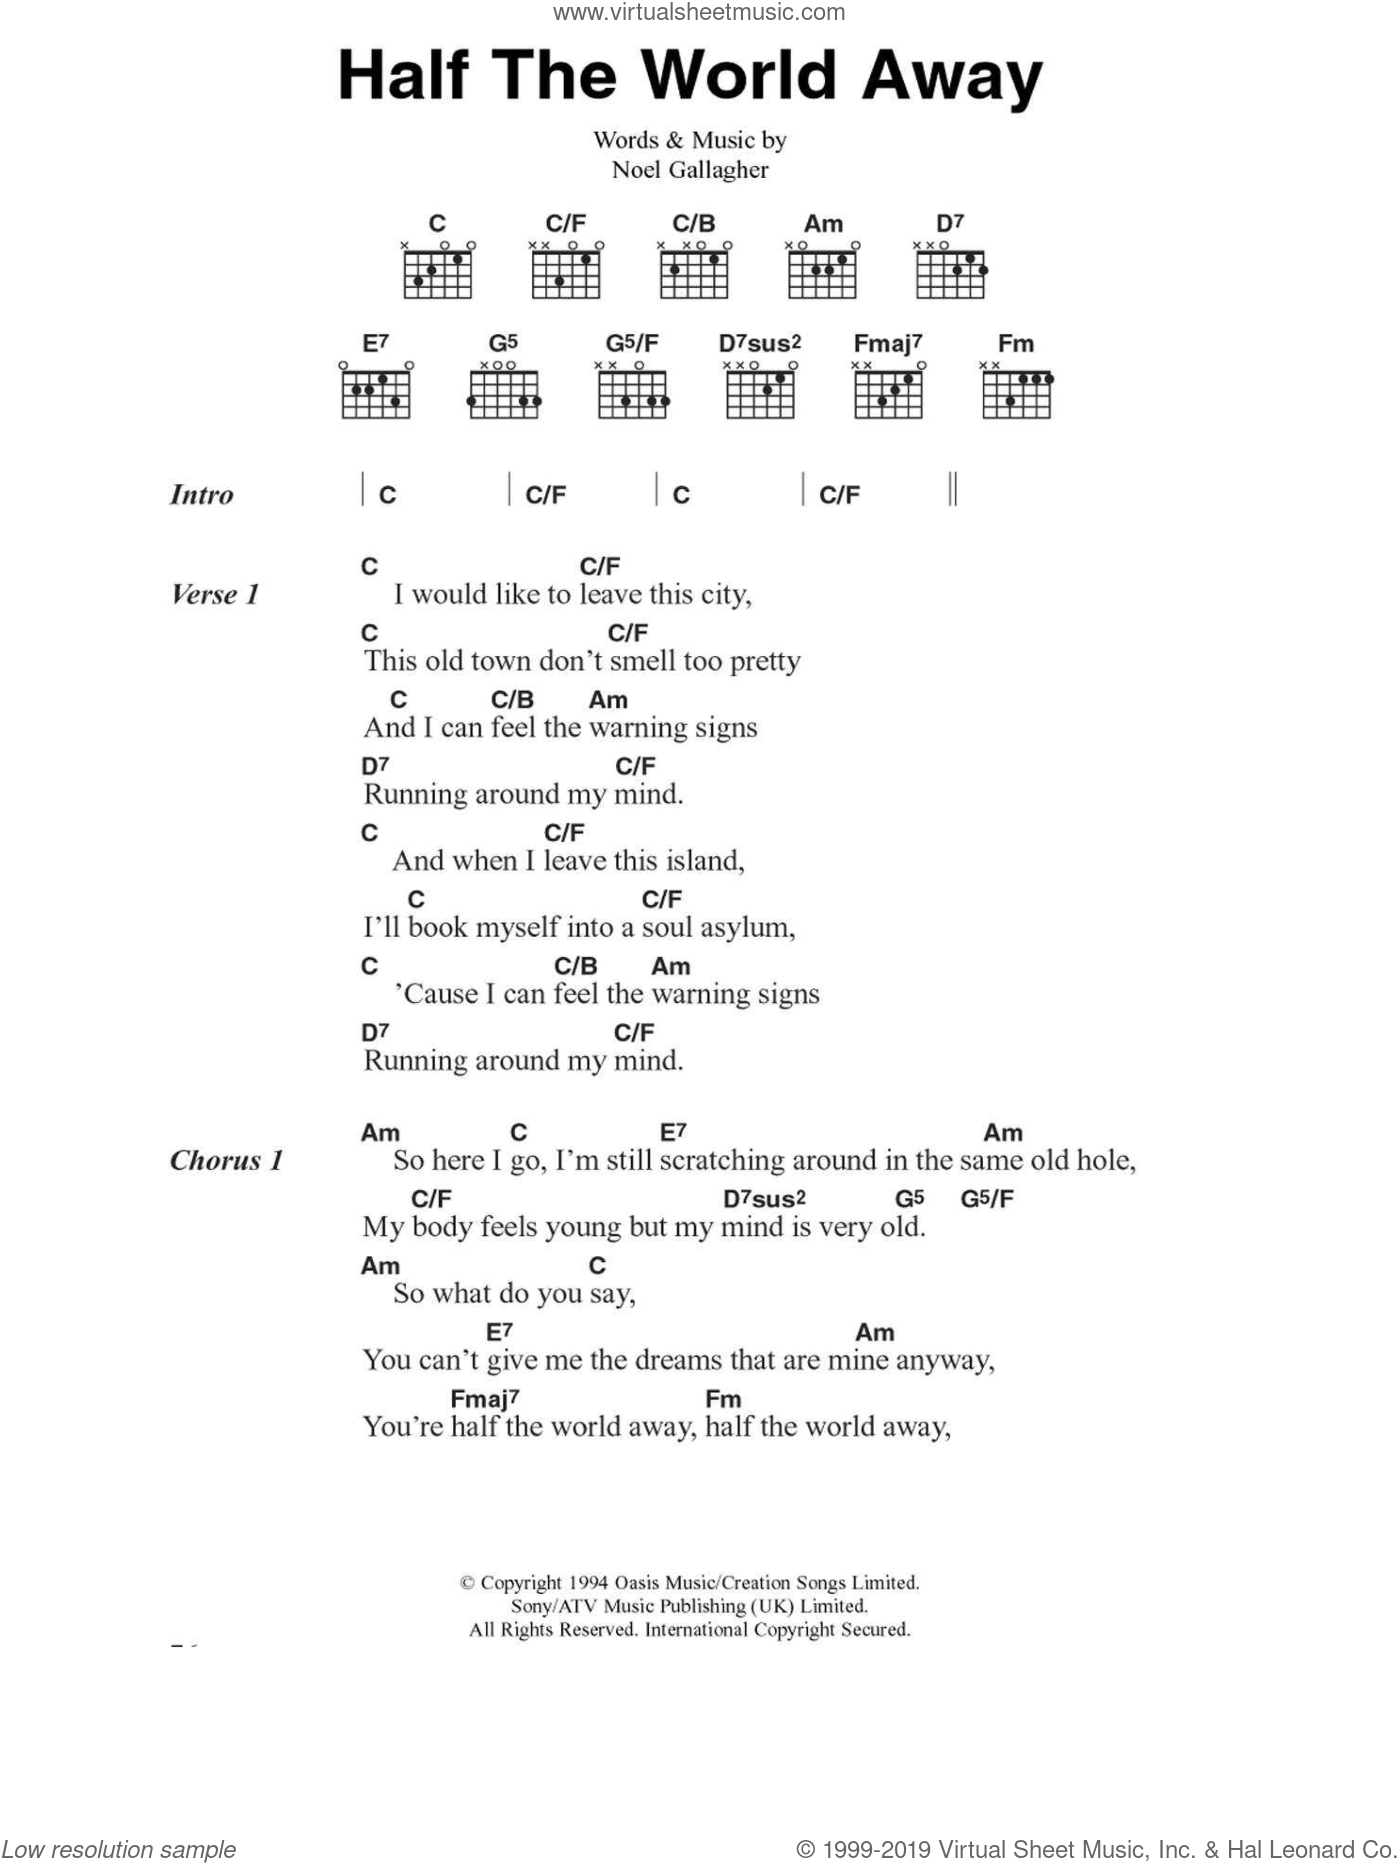 Half The World Away sheet music for guitar (chords) by Oasis and Noel Gallagher, intermediate skill level